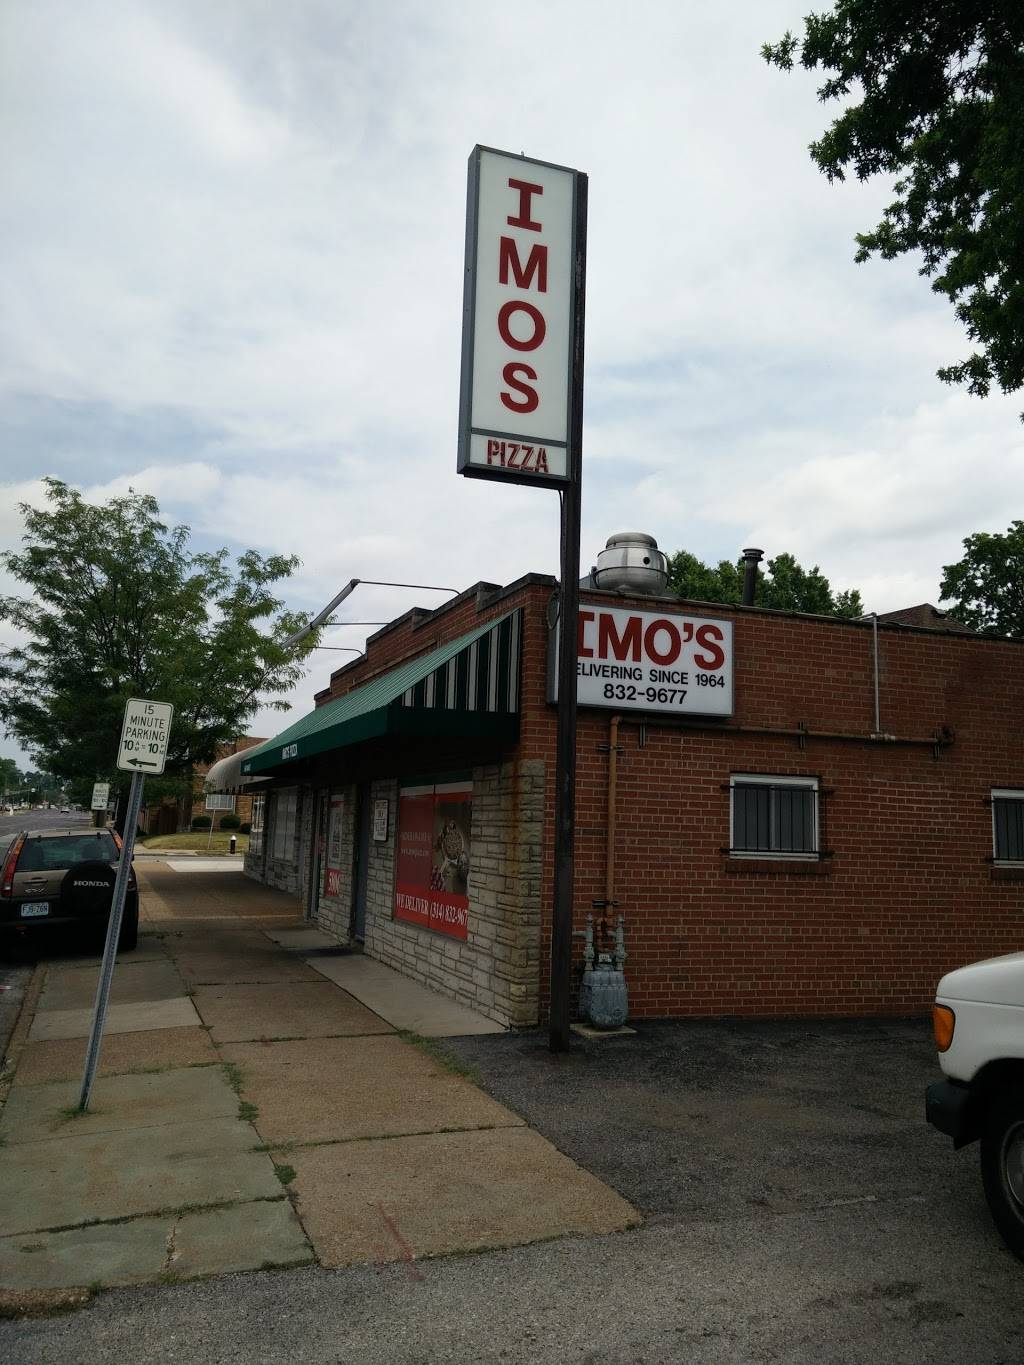 Imos Pizza - meal delivery  | Photo 4 of 10 | Address: 5806 Hampton Ave, St. Louis, MO 63109, USA | Phone: (314) 832-9677